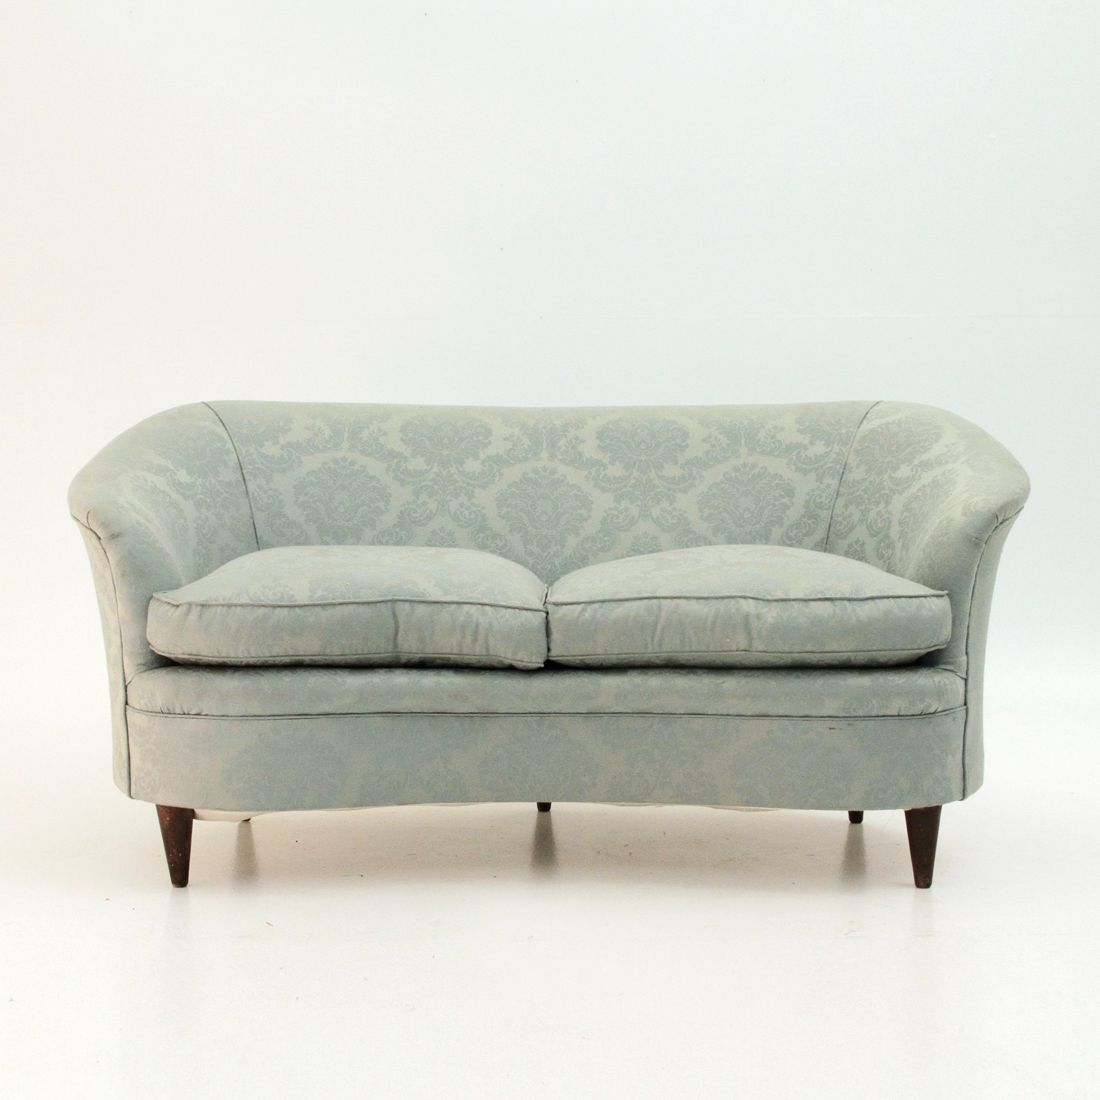 Two seater sofa 1940s for sale at pamono for Sofa 7 seater